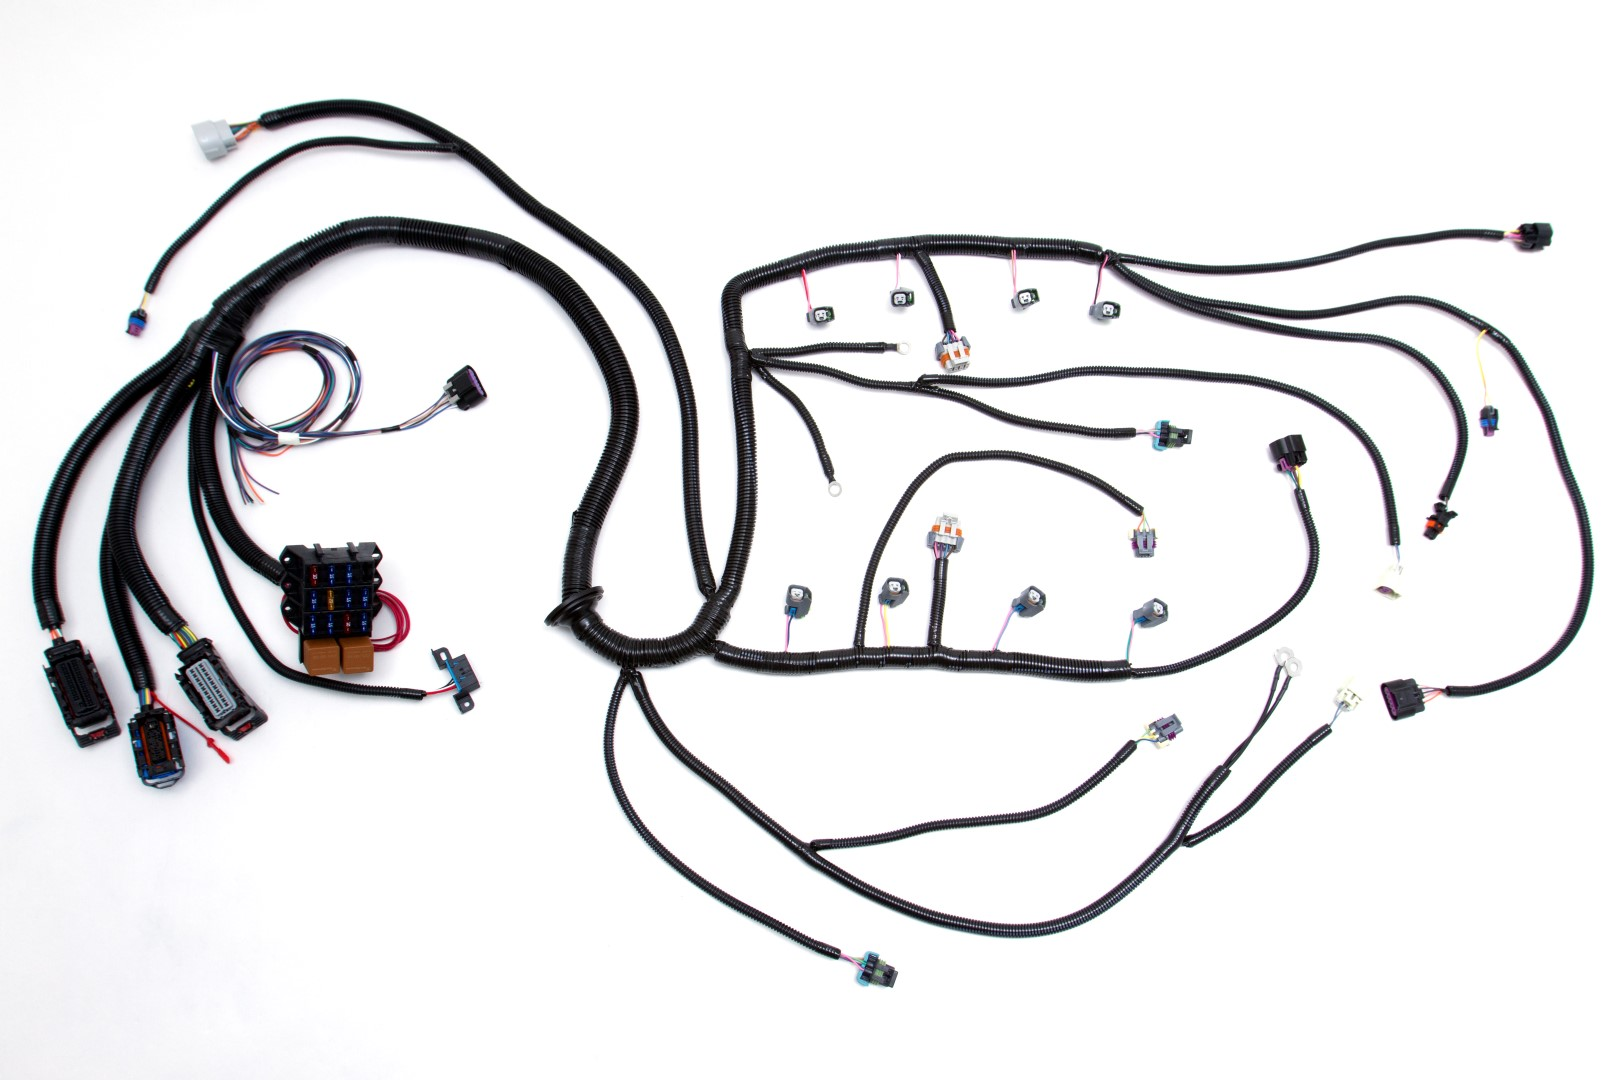 13 Gm Wiring Harness | Wiring Diagrams Oem Gm Wiring Harness Clips on